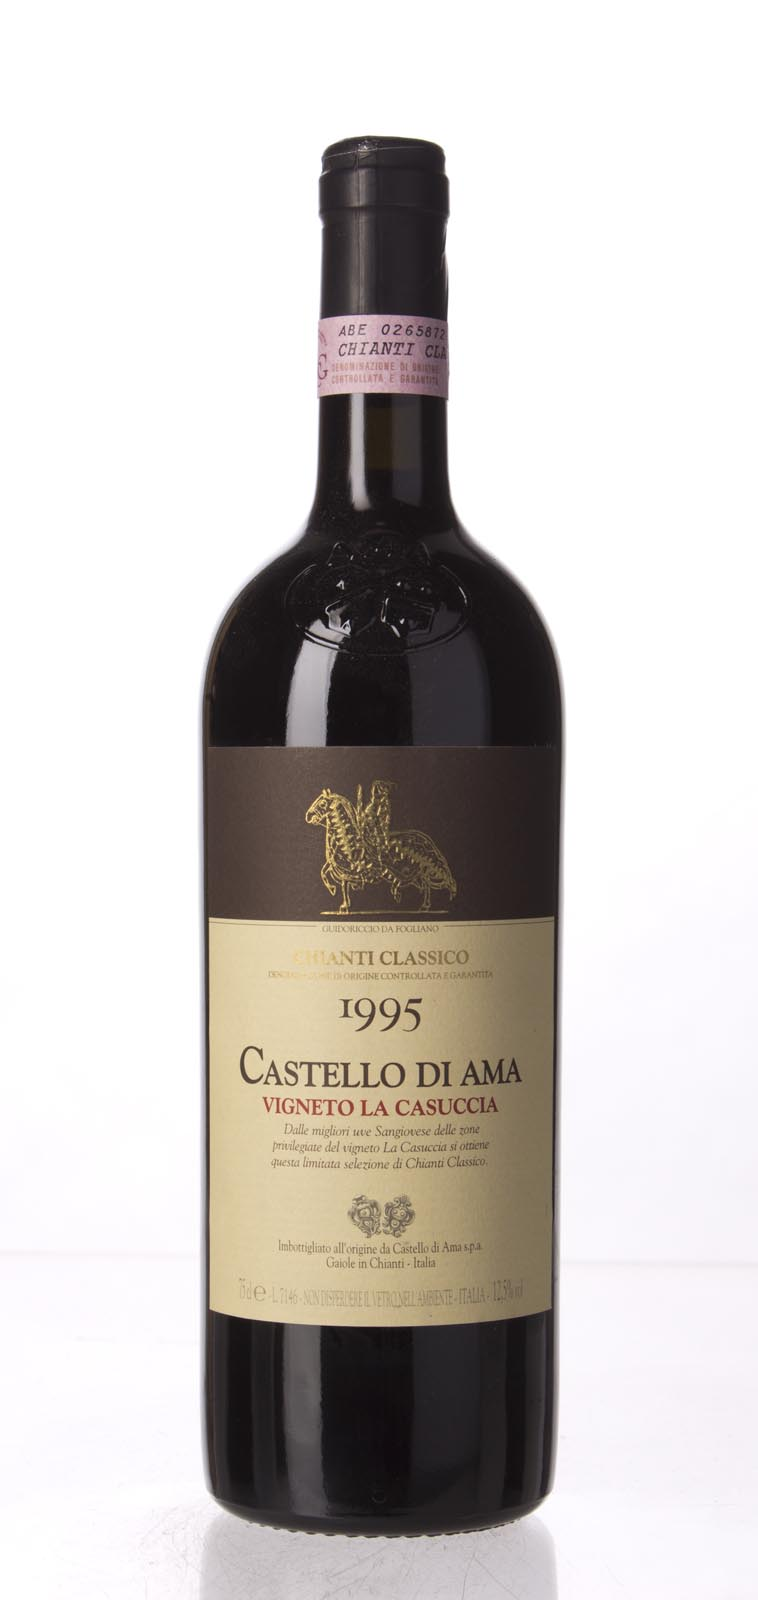 Castello di Ama Chianti Classico Vigneto la Casuccia 1995, 750mL () from The BPW - Merchants of rare and fine wines.